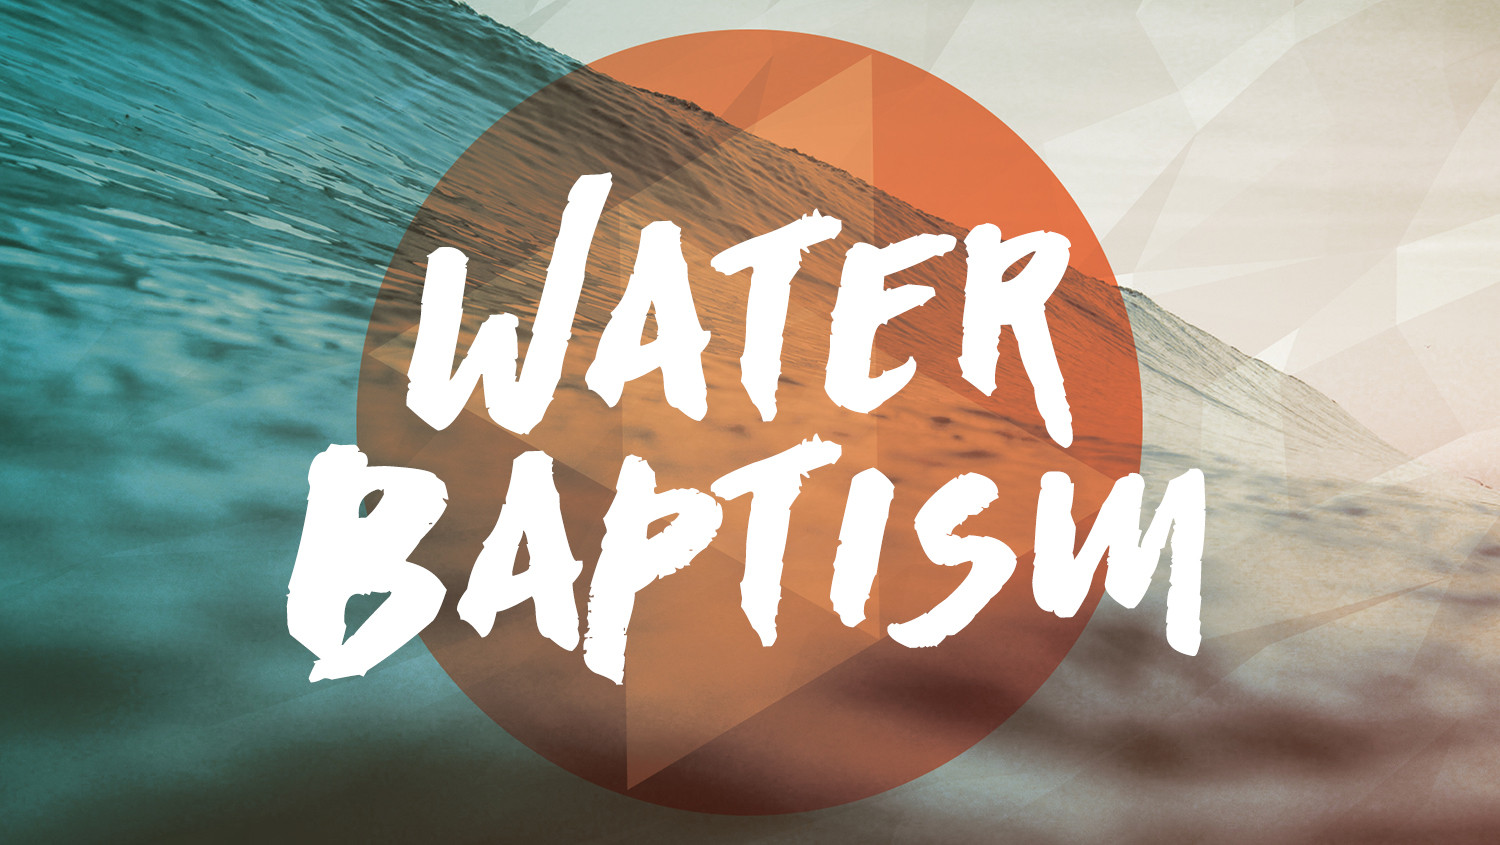 Sign Up For Water Baptism! - Baptism is a huge marker in your child's life. Water baptism for Christians is not only a public declaration to love and follow Jesus, but also a symbol of Christ's own death and resurrection for us. We encourage your kids if they have made that commitment to love and follow Jesus the next step is water baptism (Matthew 28:19.) If your child is interested in being baptized please fill out the form below to let Pastor Linsey know by May 6th. The next scheduled baptism is May 20, 2018 during the 10:30am Gathering.